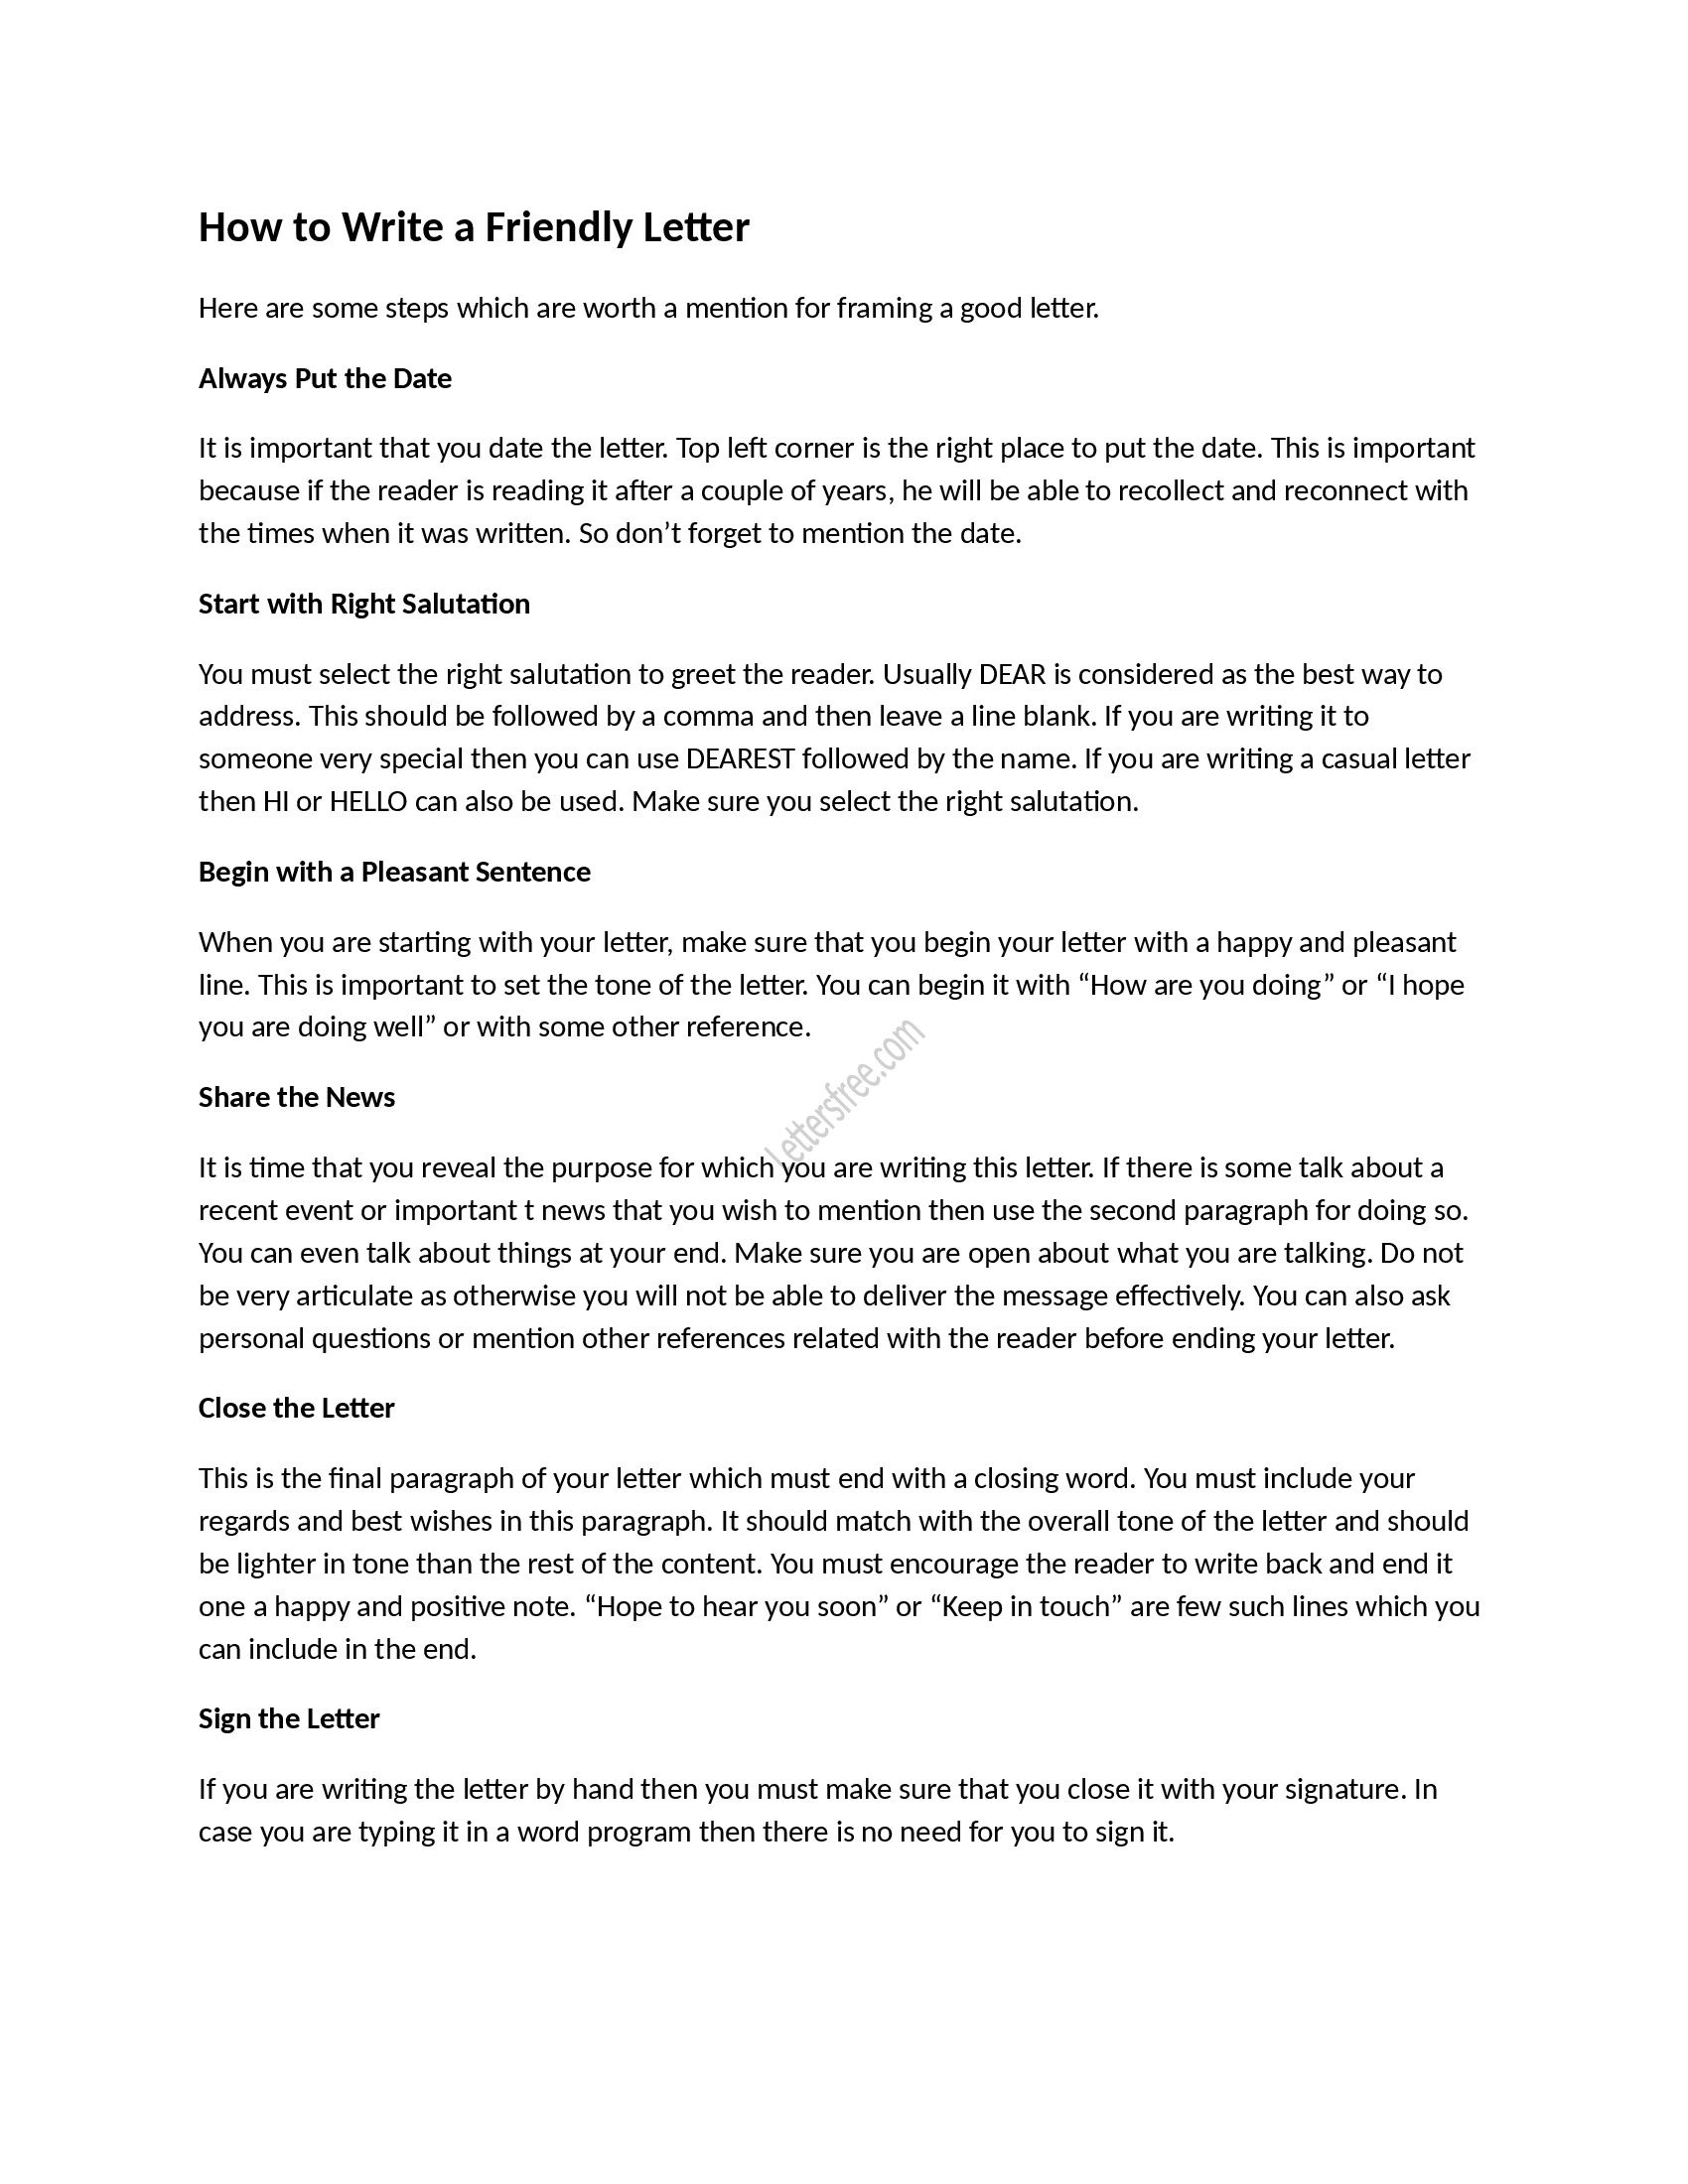 How to write a friendly letter with sample pinterest friendly letter how to write a good friendly letter sample friendly letter tips for writing a friendly letter for high school friendlyletter samplefriendlyletter spiritdancerdesigns Gallery